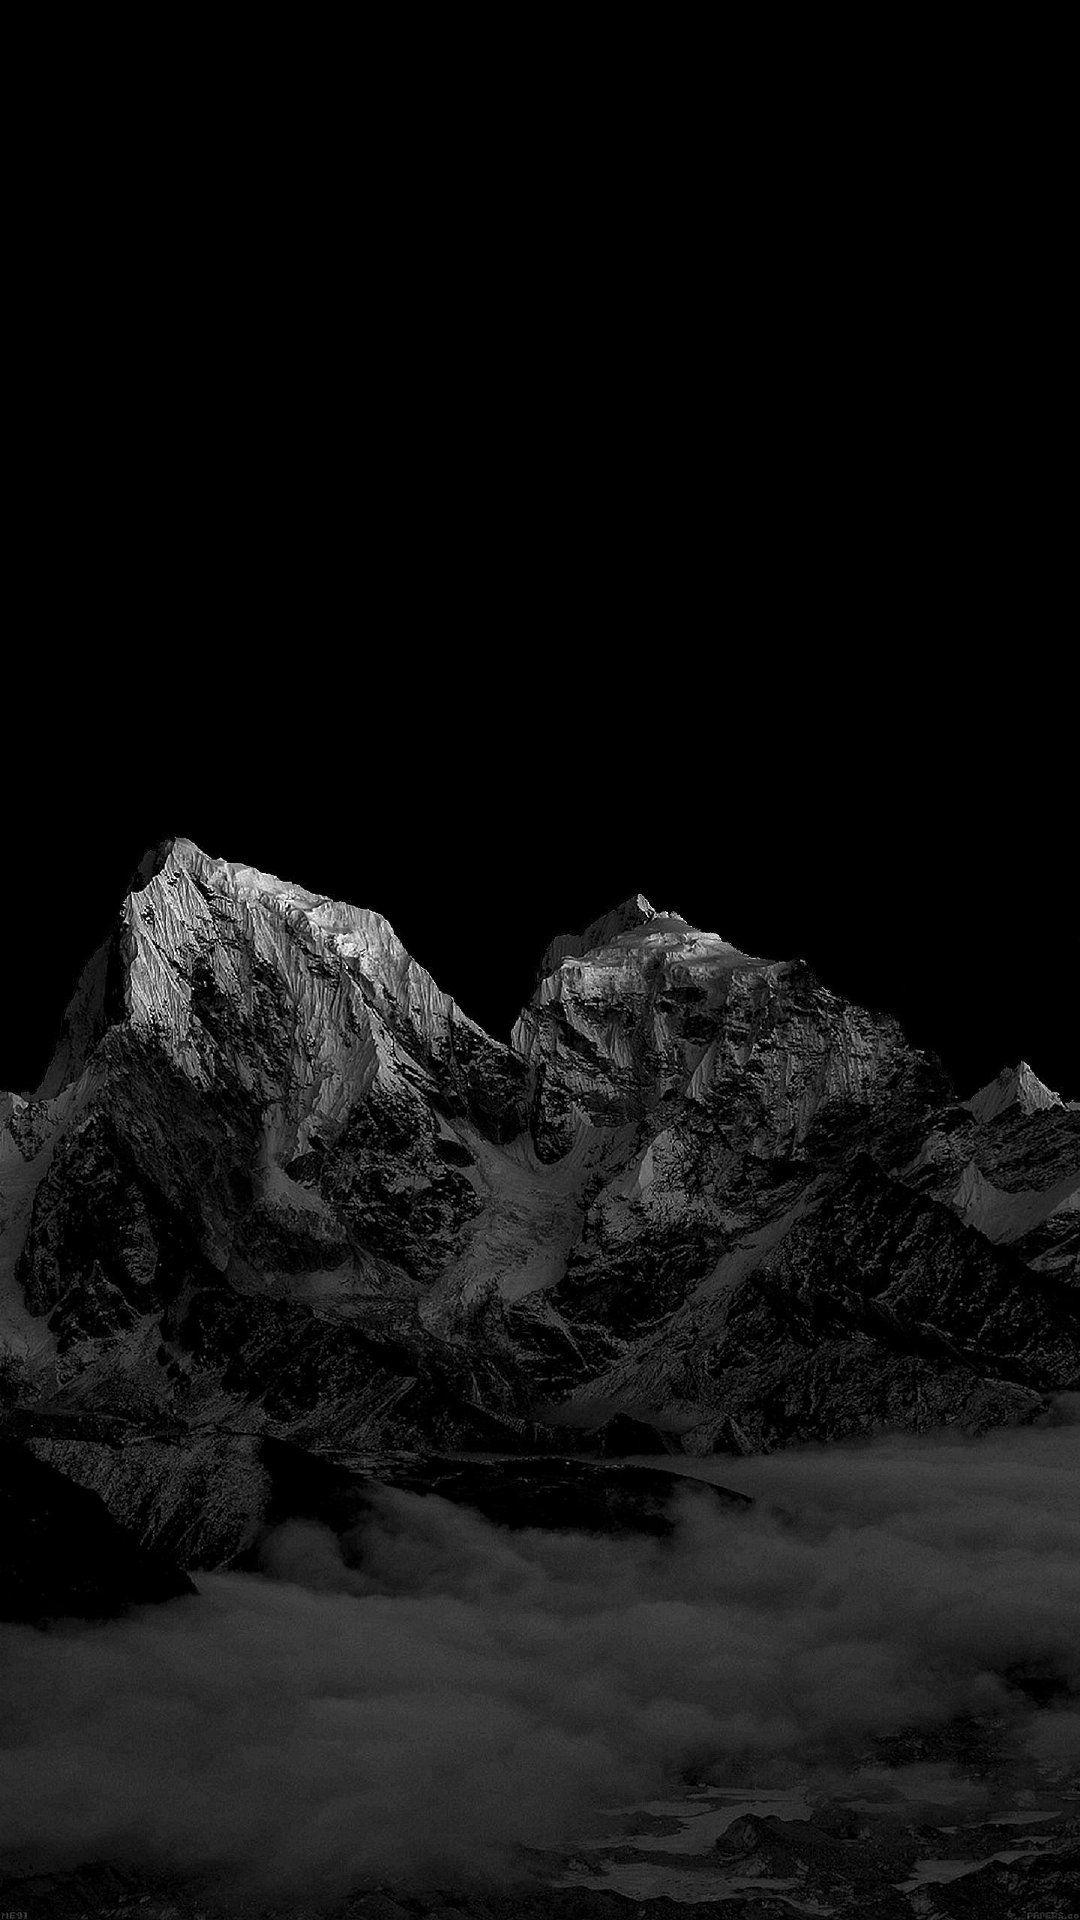 Iphone 11 Iphone Wallpapers Mountains Night 6wallpaper Wallpaprs Background Iphon Dark Wallpaper Iphone Black Wallpaper Iphone Dark Black Wallpaper Iphone